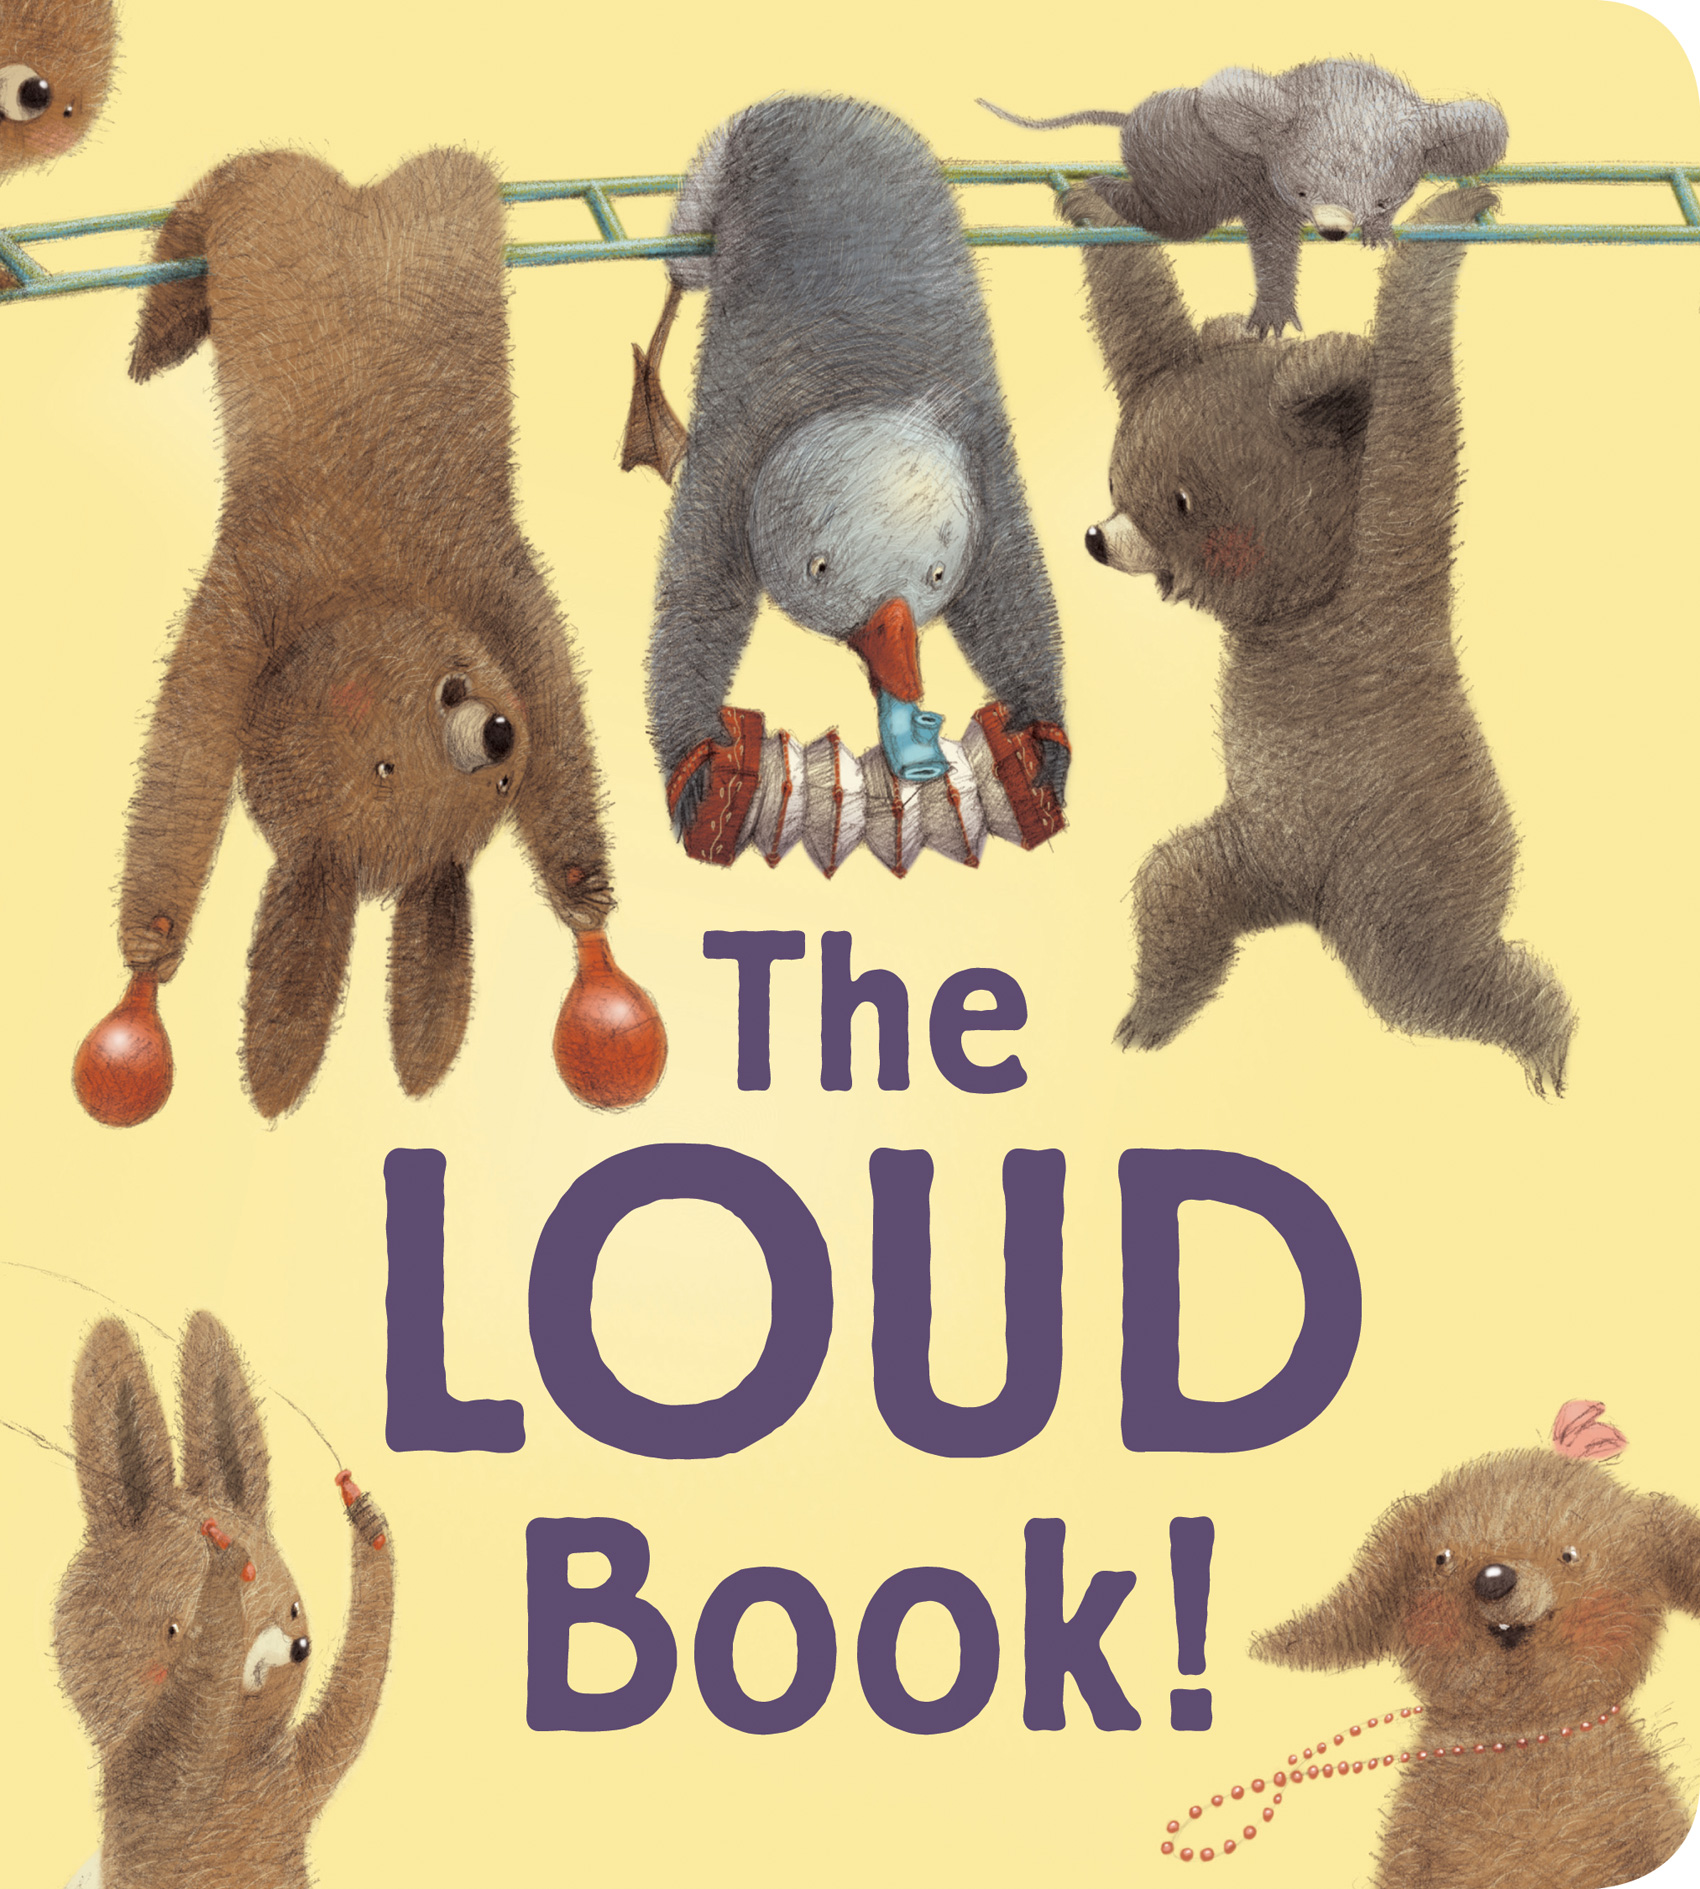 The Loud Book! padded board book-9780544430648